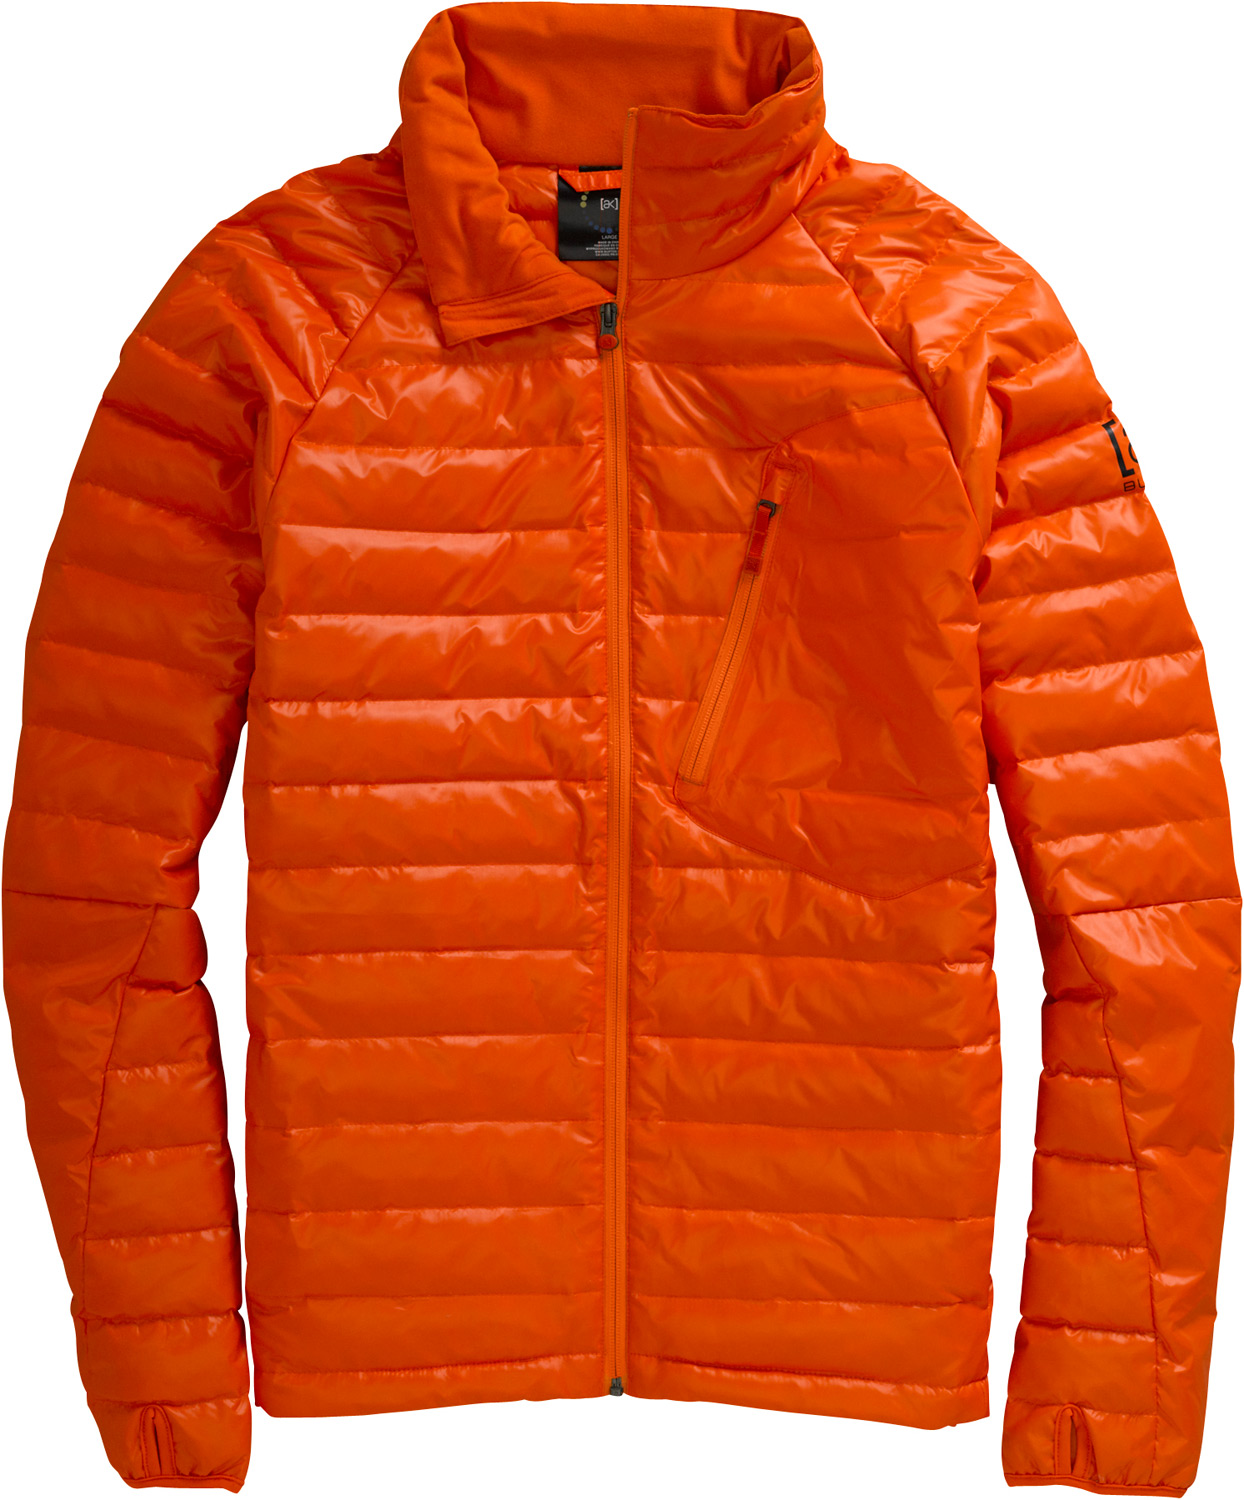 Snowboard From stylish street piece to life-saving extra layer,powerful, ultra-packable warmth.Key Features of the Burton AK BK Insulator Jacket: 600mm Waterproof Lightweight Low Denure DWR Coated Fabric DRYRIDE Thermex 550 Down Fill Pit Zips Fleece-Lined Handwarmer Pockets Chest Pocket - $174.95